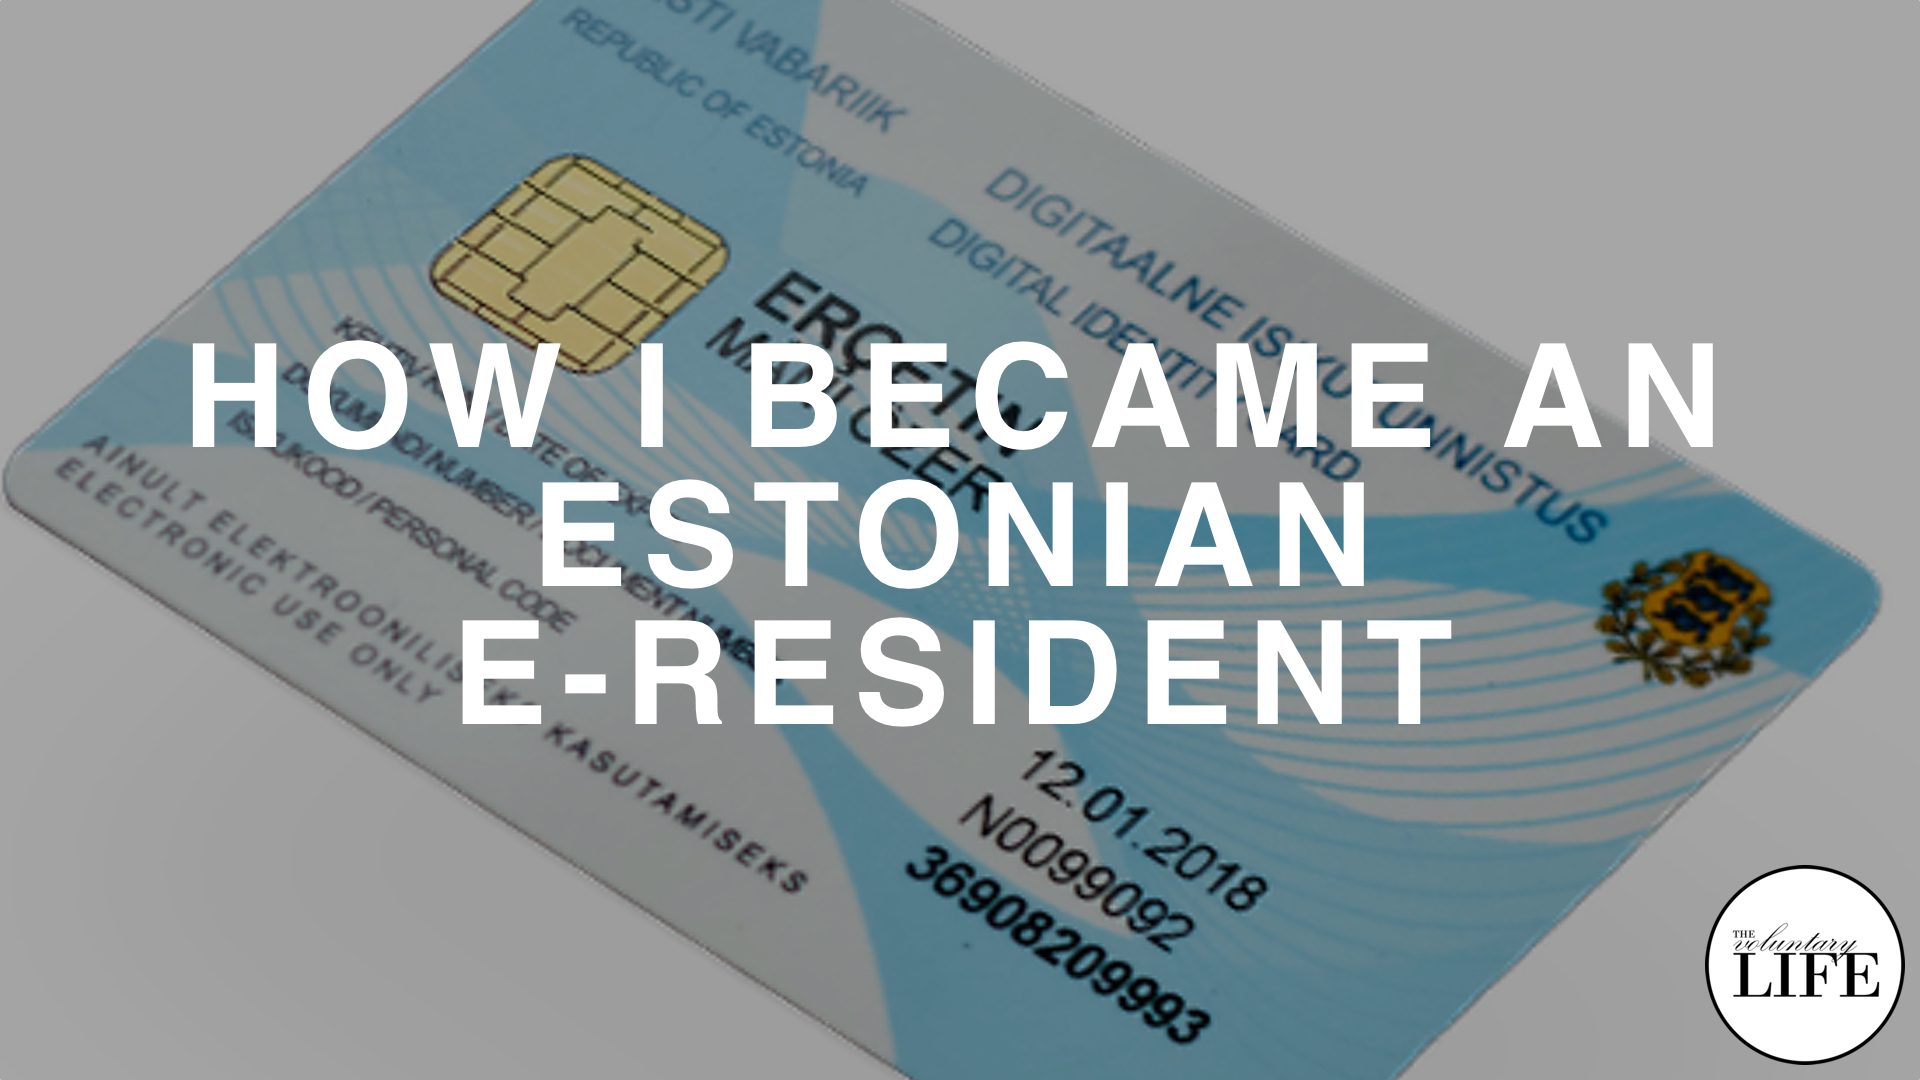 310 How I Became An Estonian E-Resident